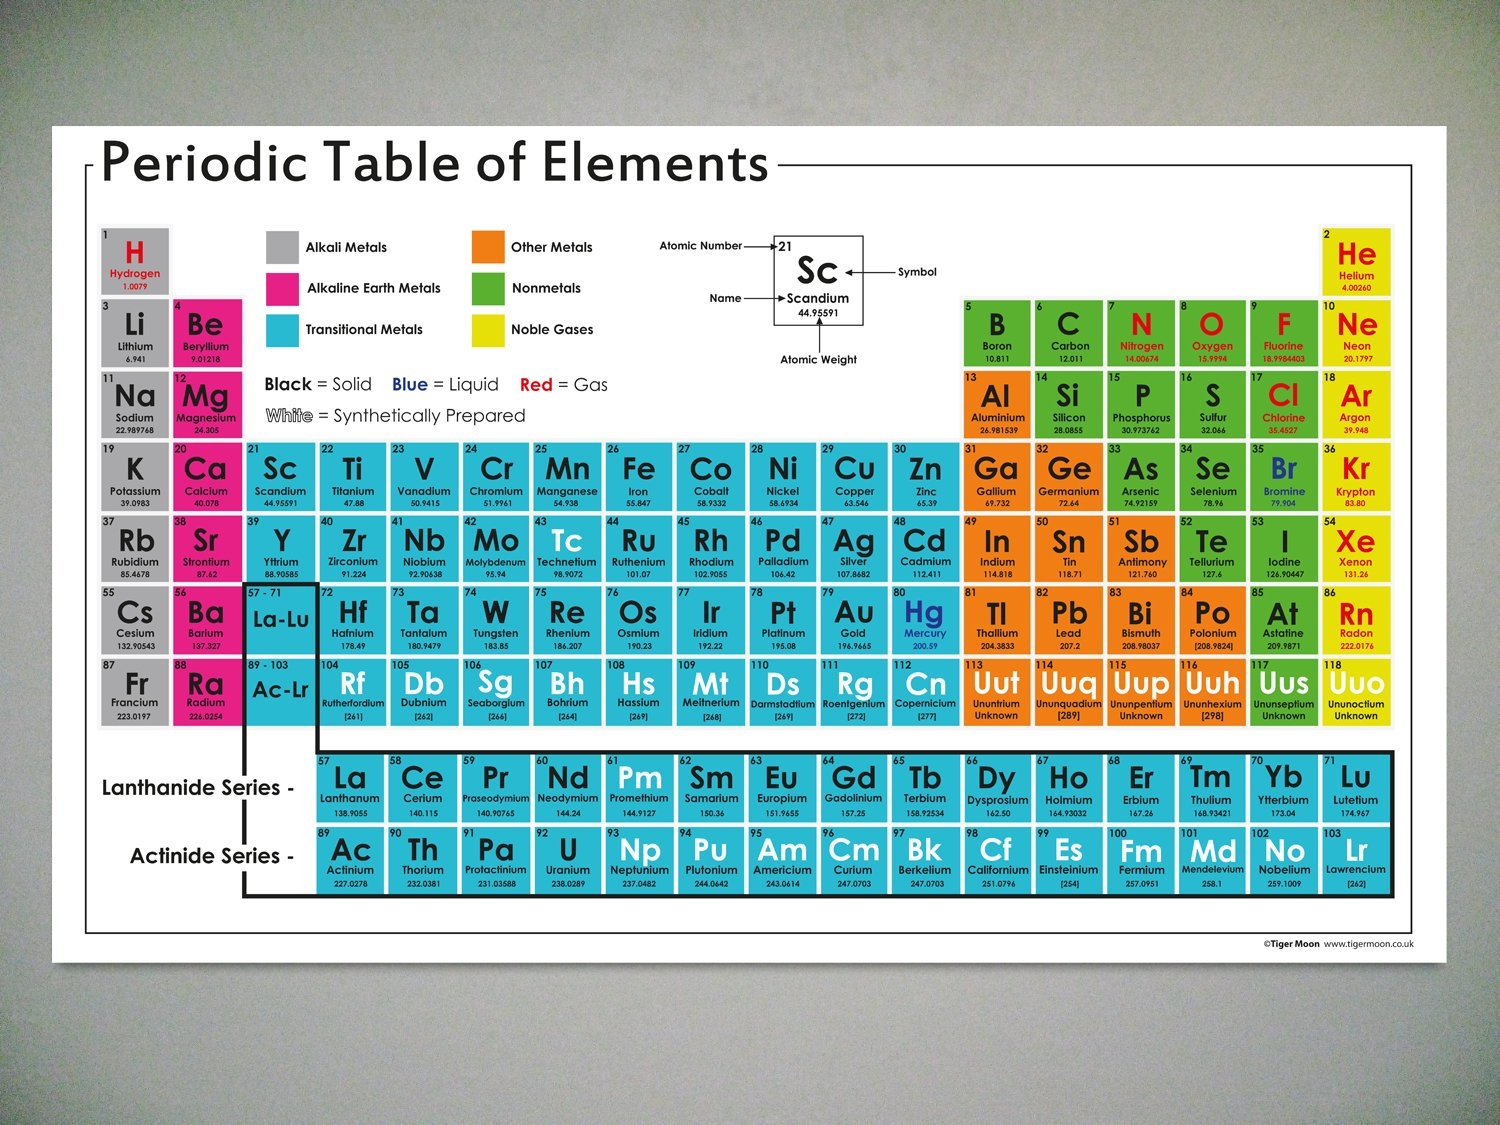 Giant poster laminated periodic table of elements 165 x 100 cm giant poster laminated periodic table of elements 165 x 100 cm school science classroom resourcedecoration amazon office products urtaz Images